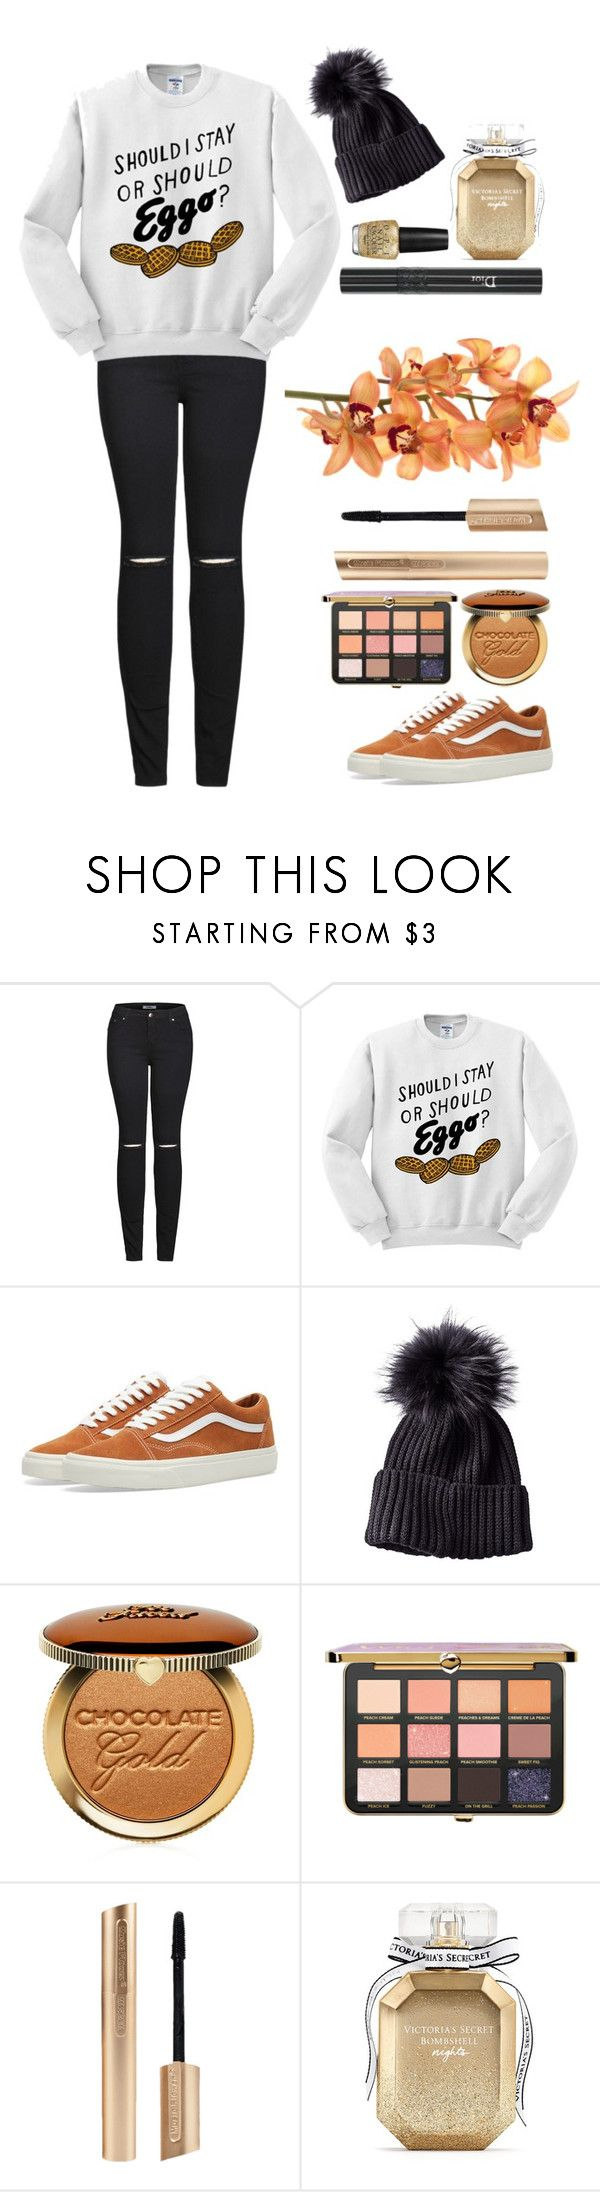 """""""Untitled #368"""" by izzwhizzicorn on Polyvore featuring 2LUV, Vans, Too Faced Cosmetics, OPI, Christian Dior and Victoria's Secret"""